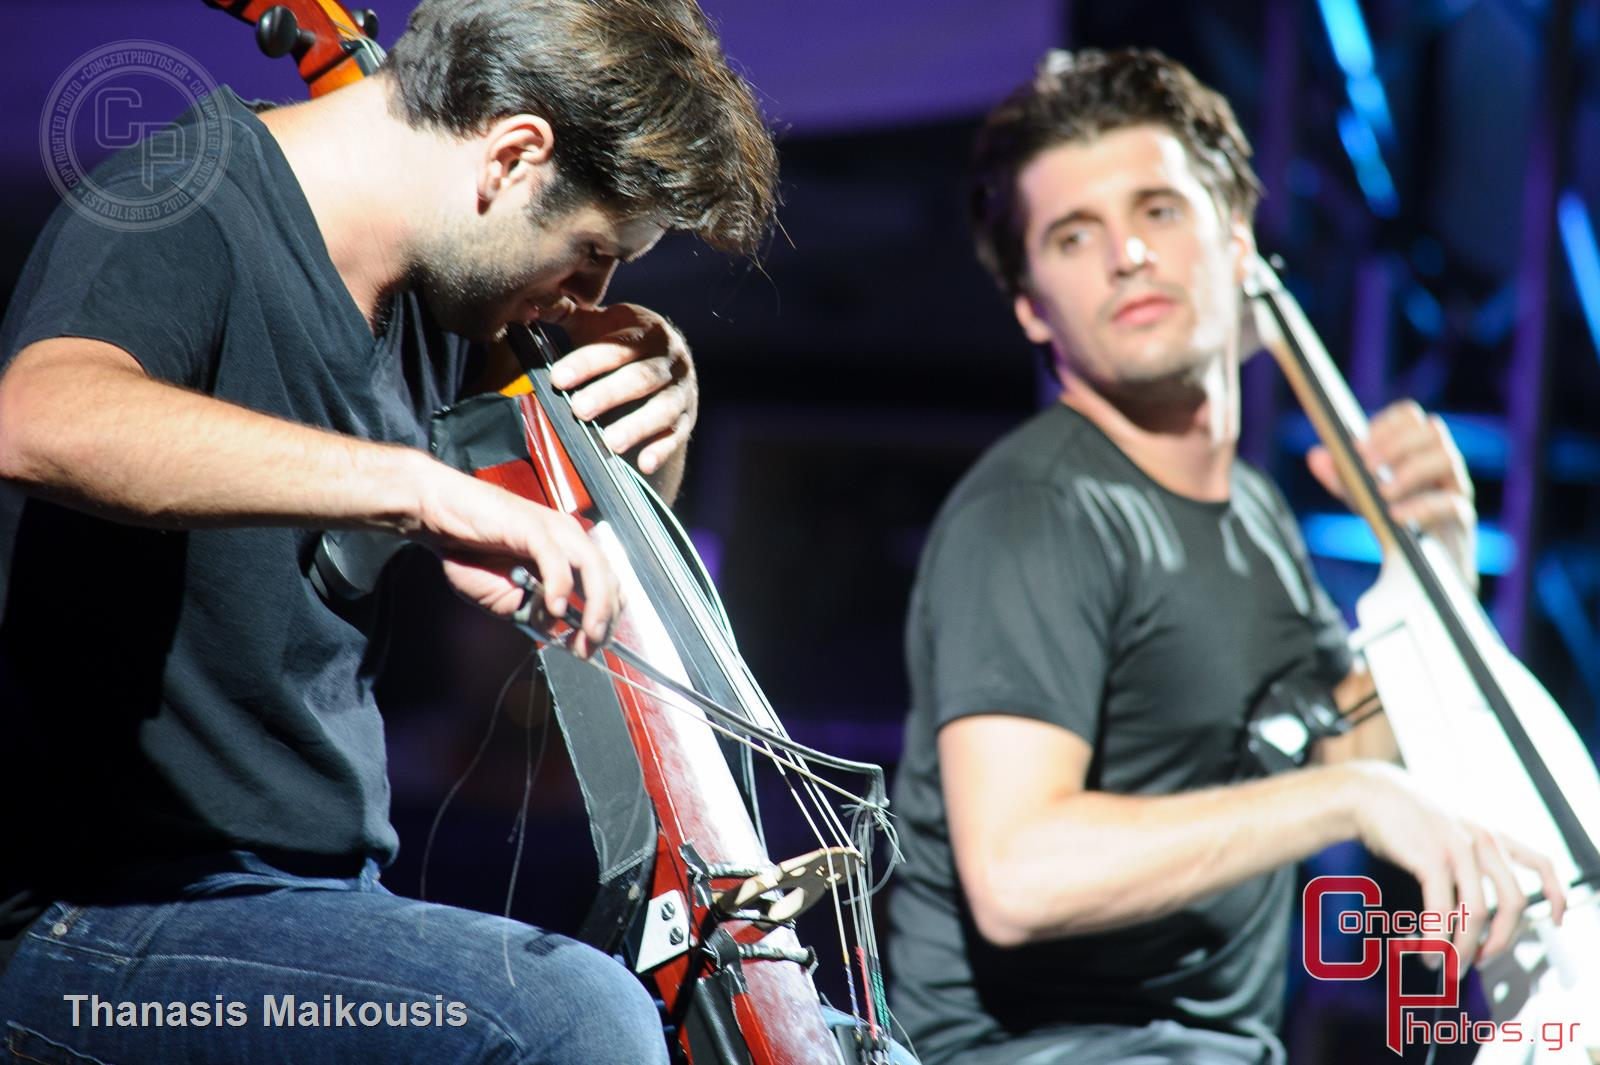 2Cellos-2Cellos Technopolis photographer: Thanasis Maikousis - untitled shoot-6151